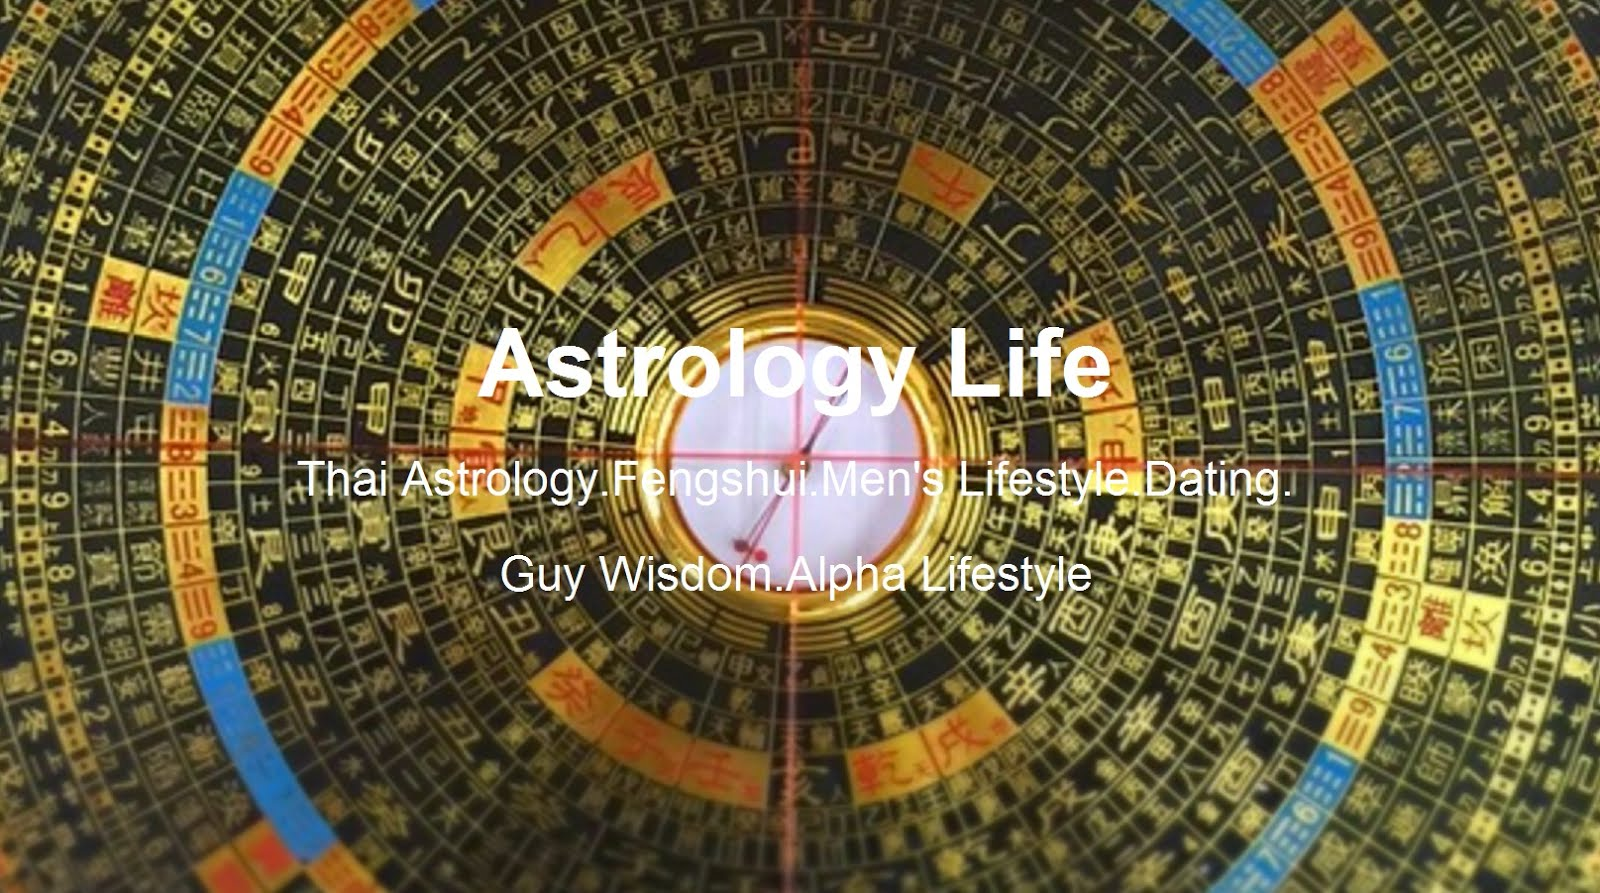 Astrology life Thai astrology and Fengshui